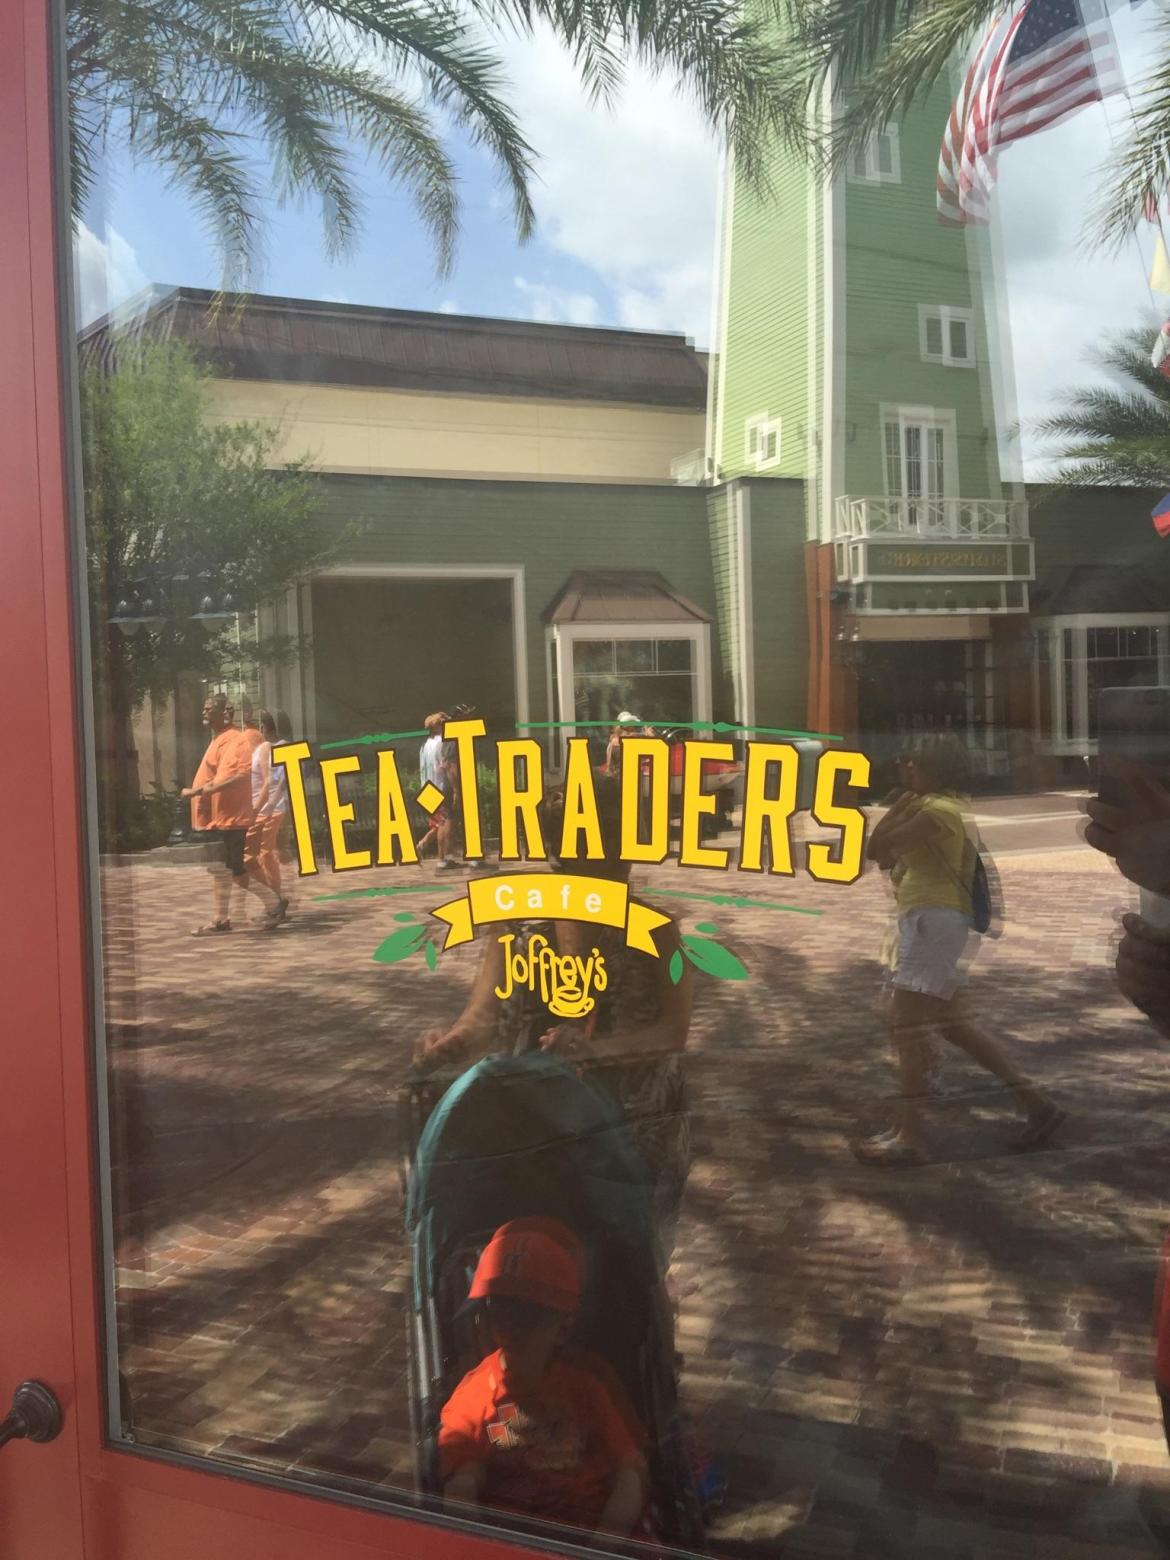 New Tea Traders Café by Joffrey's Opens at the new Disney Springs/Downtown Disney